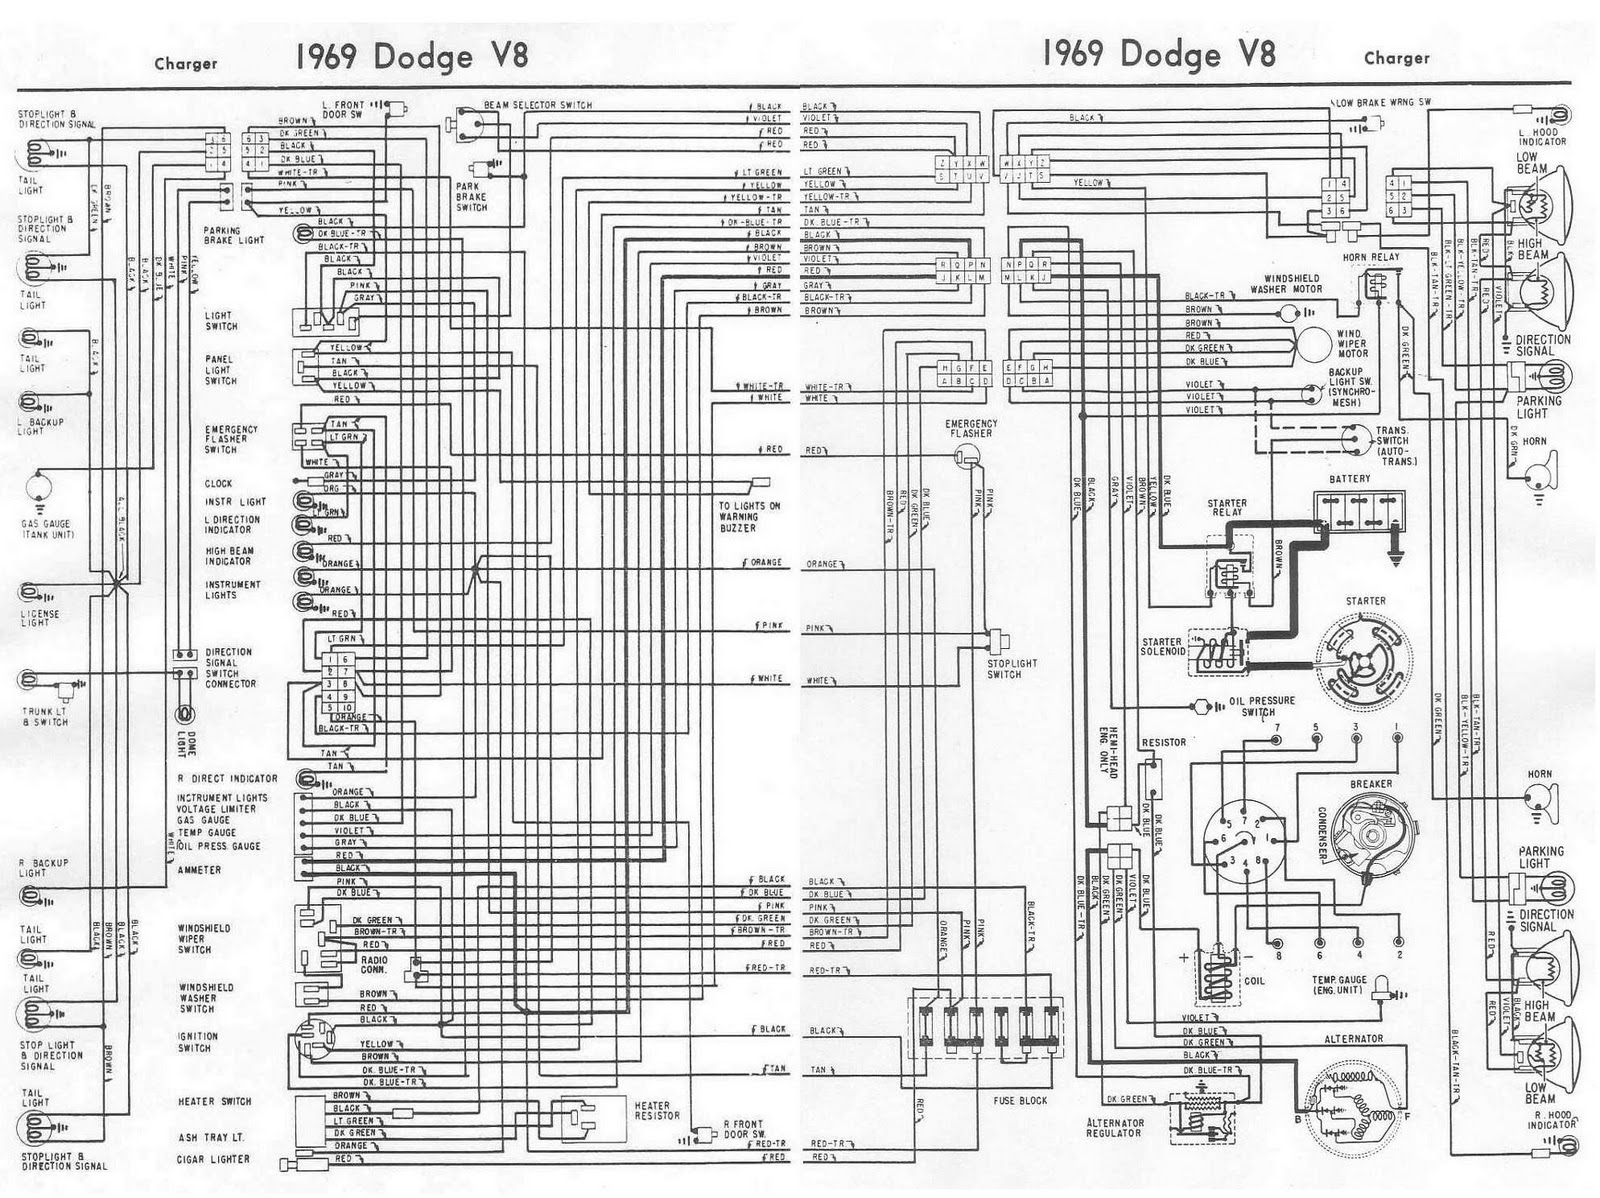 small resolution of dodge charger 1969 v8 complete electrical wiring diagram 2012 dodge charger police package wiring diagram 2012 dodge charger police package wiring diagram